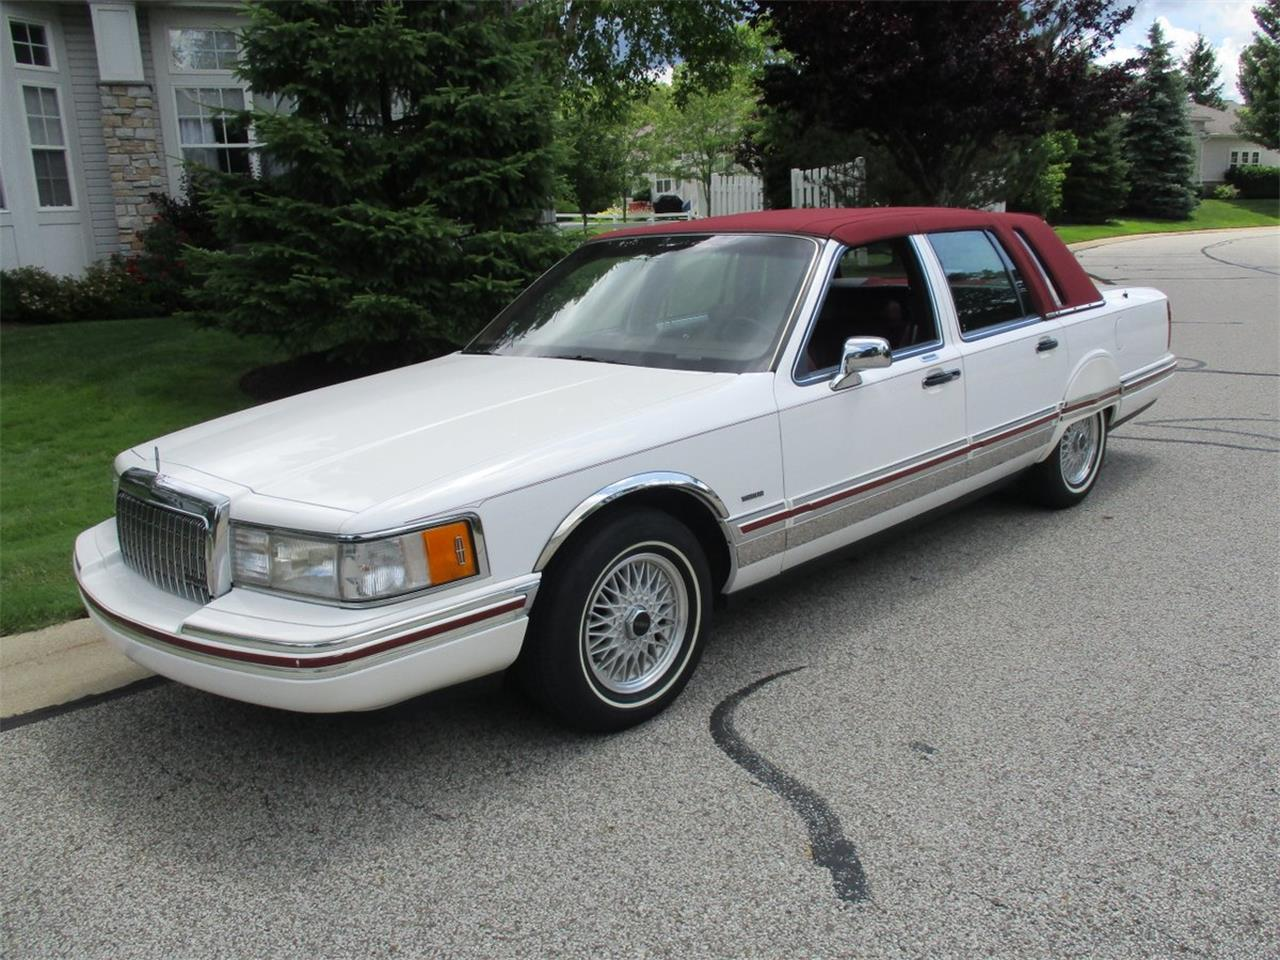 Large Picture of '94 Lincoln Executive Series Town Car located in Ohio - $5,990.00 - LDPU